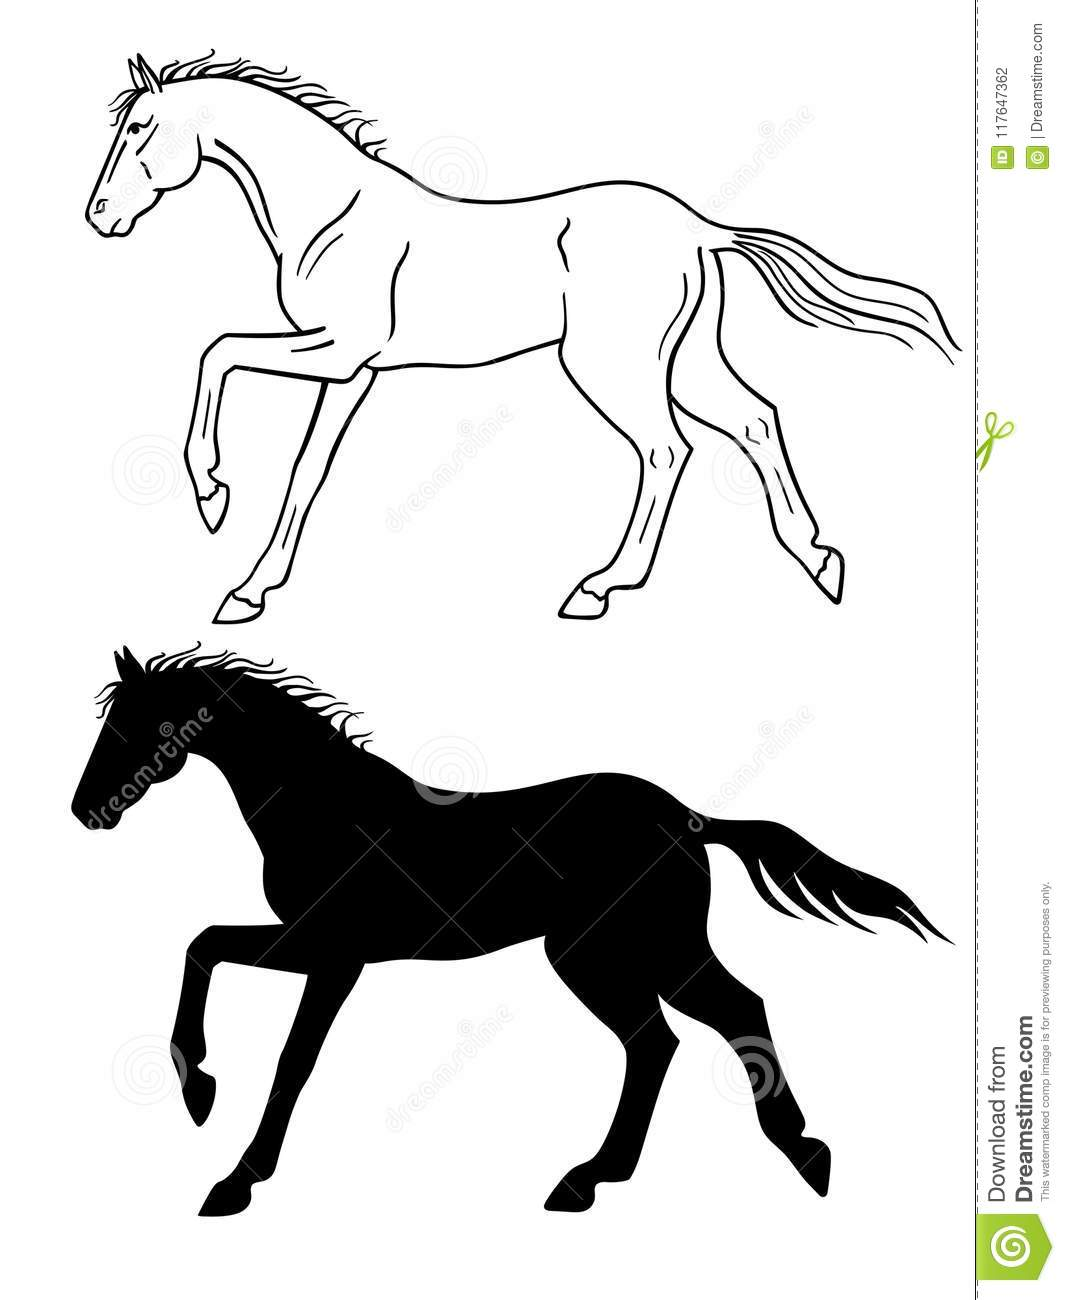 Racing Horses Silhouette Stock Illustrations 479 Racing Horses Silhouette Stock Illustrations Vectors Clipart Dreamstime